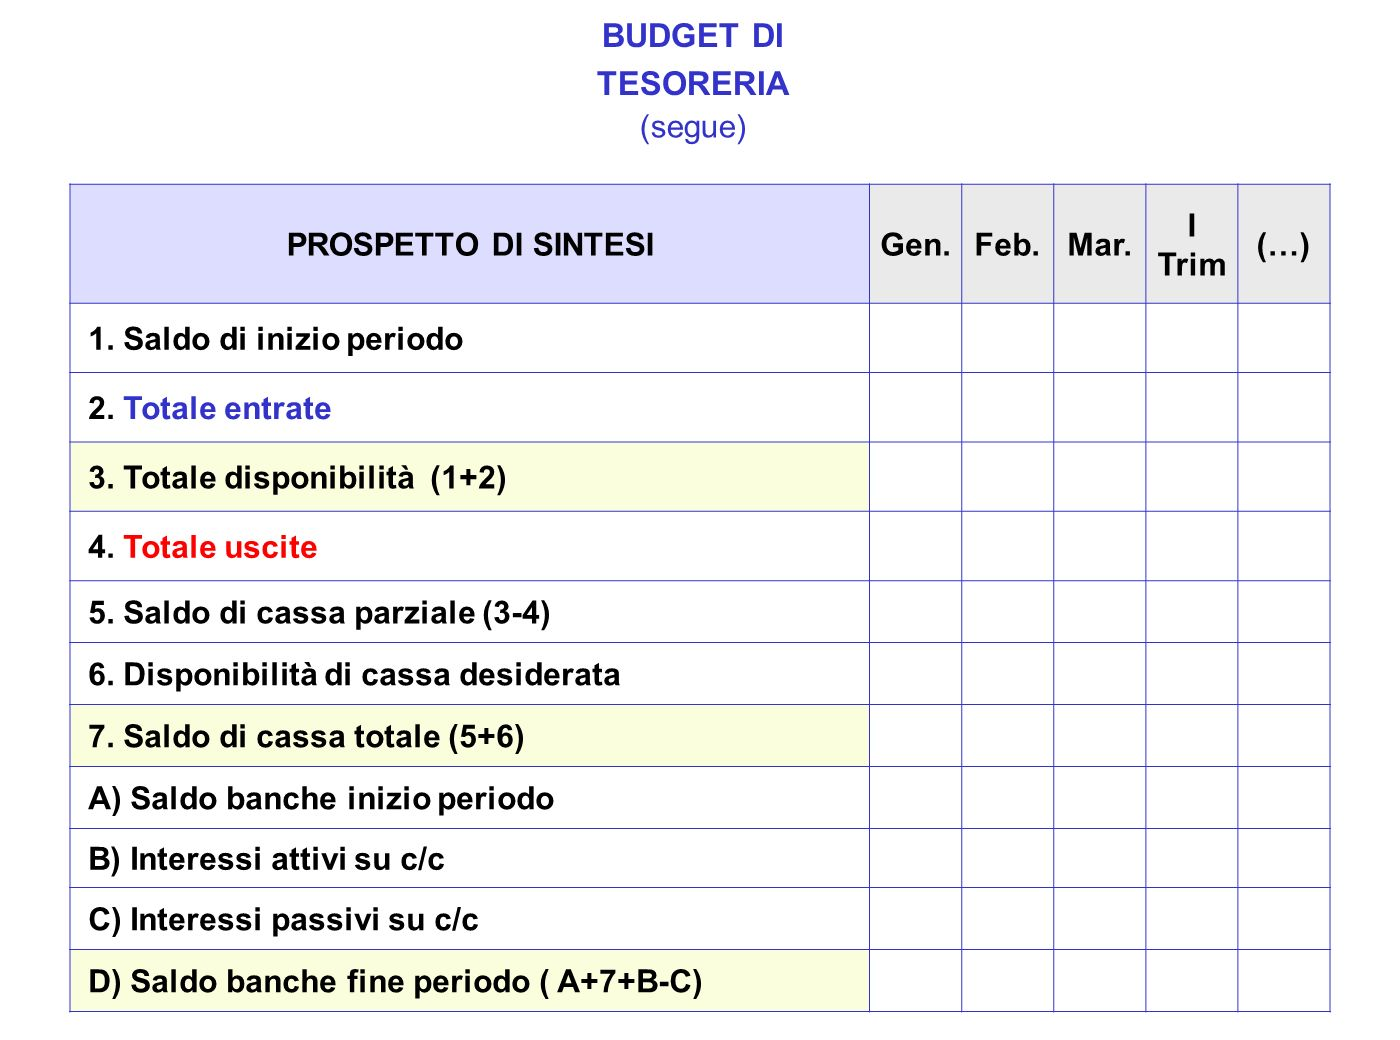 BUDGET DI TESORERIA (segue) PROSPETTO DI SINTESI Gen. Feb. Mar. I Trim